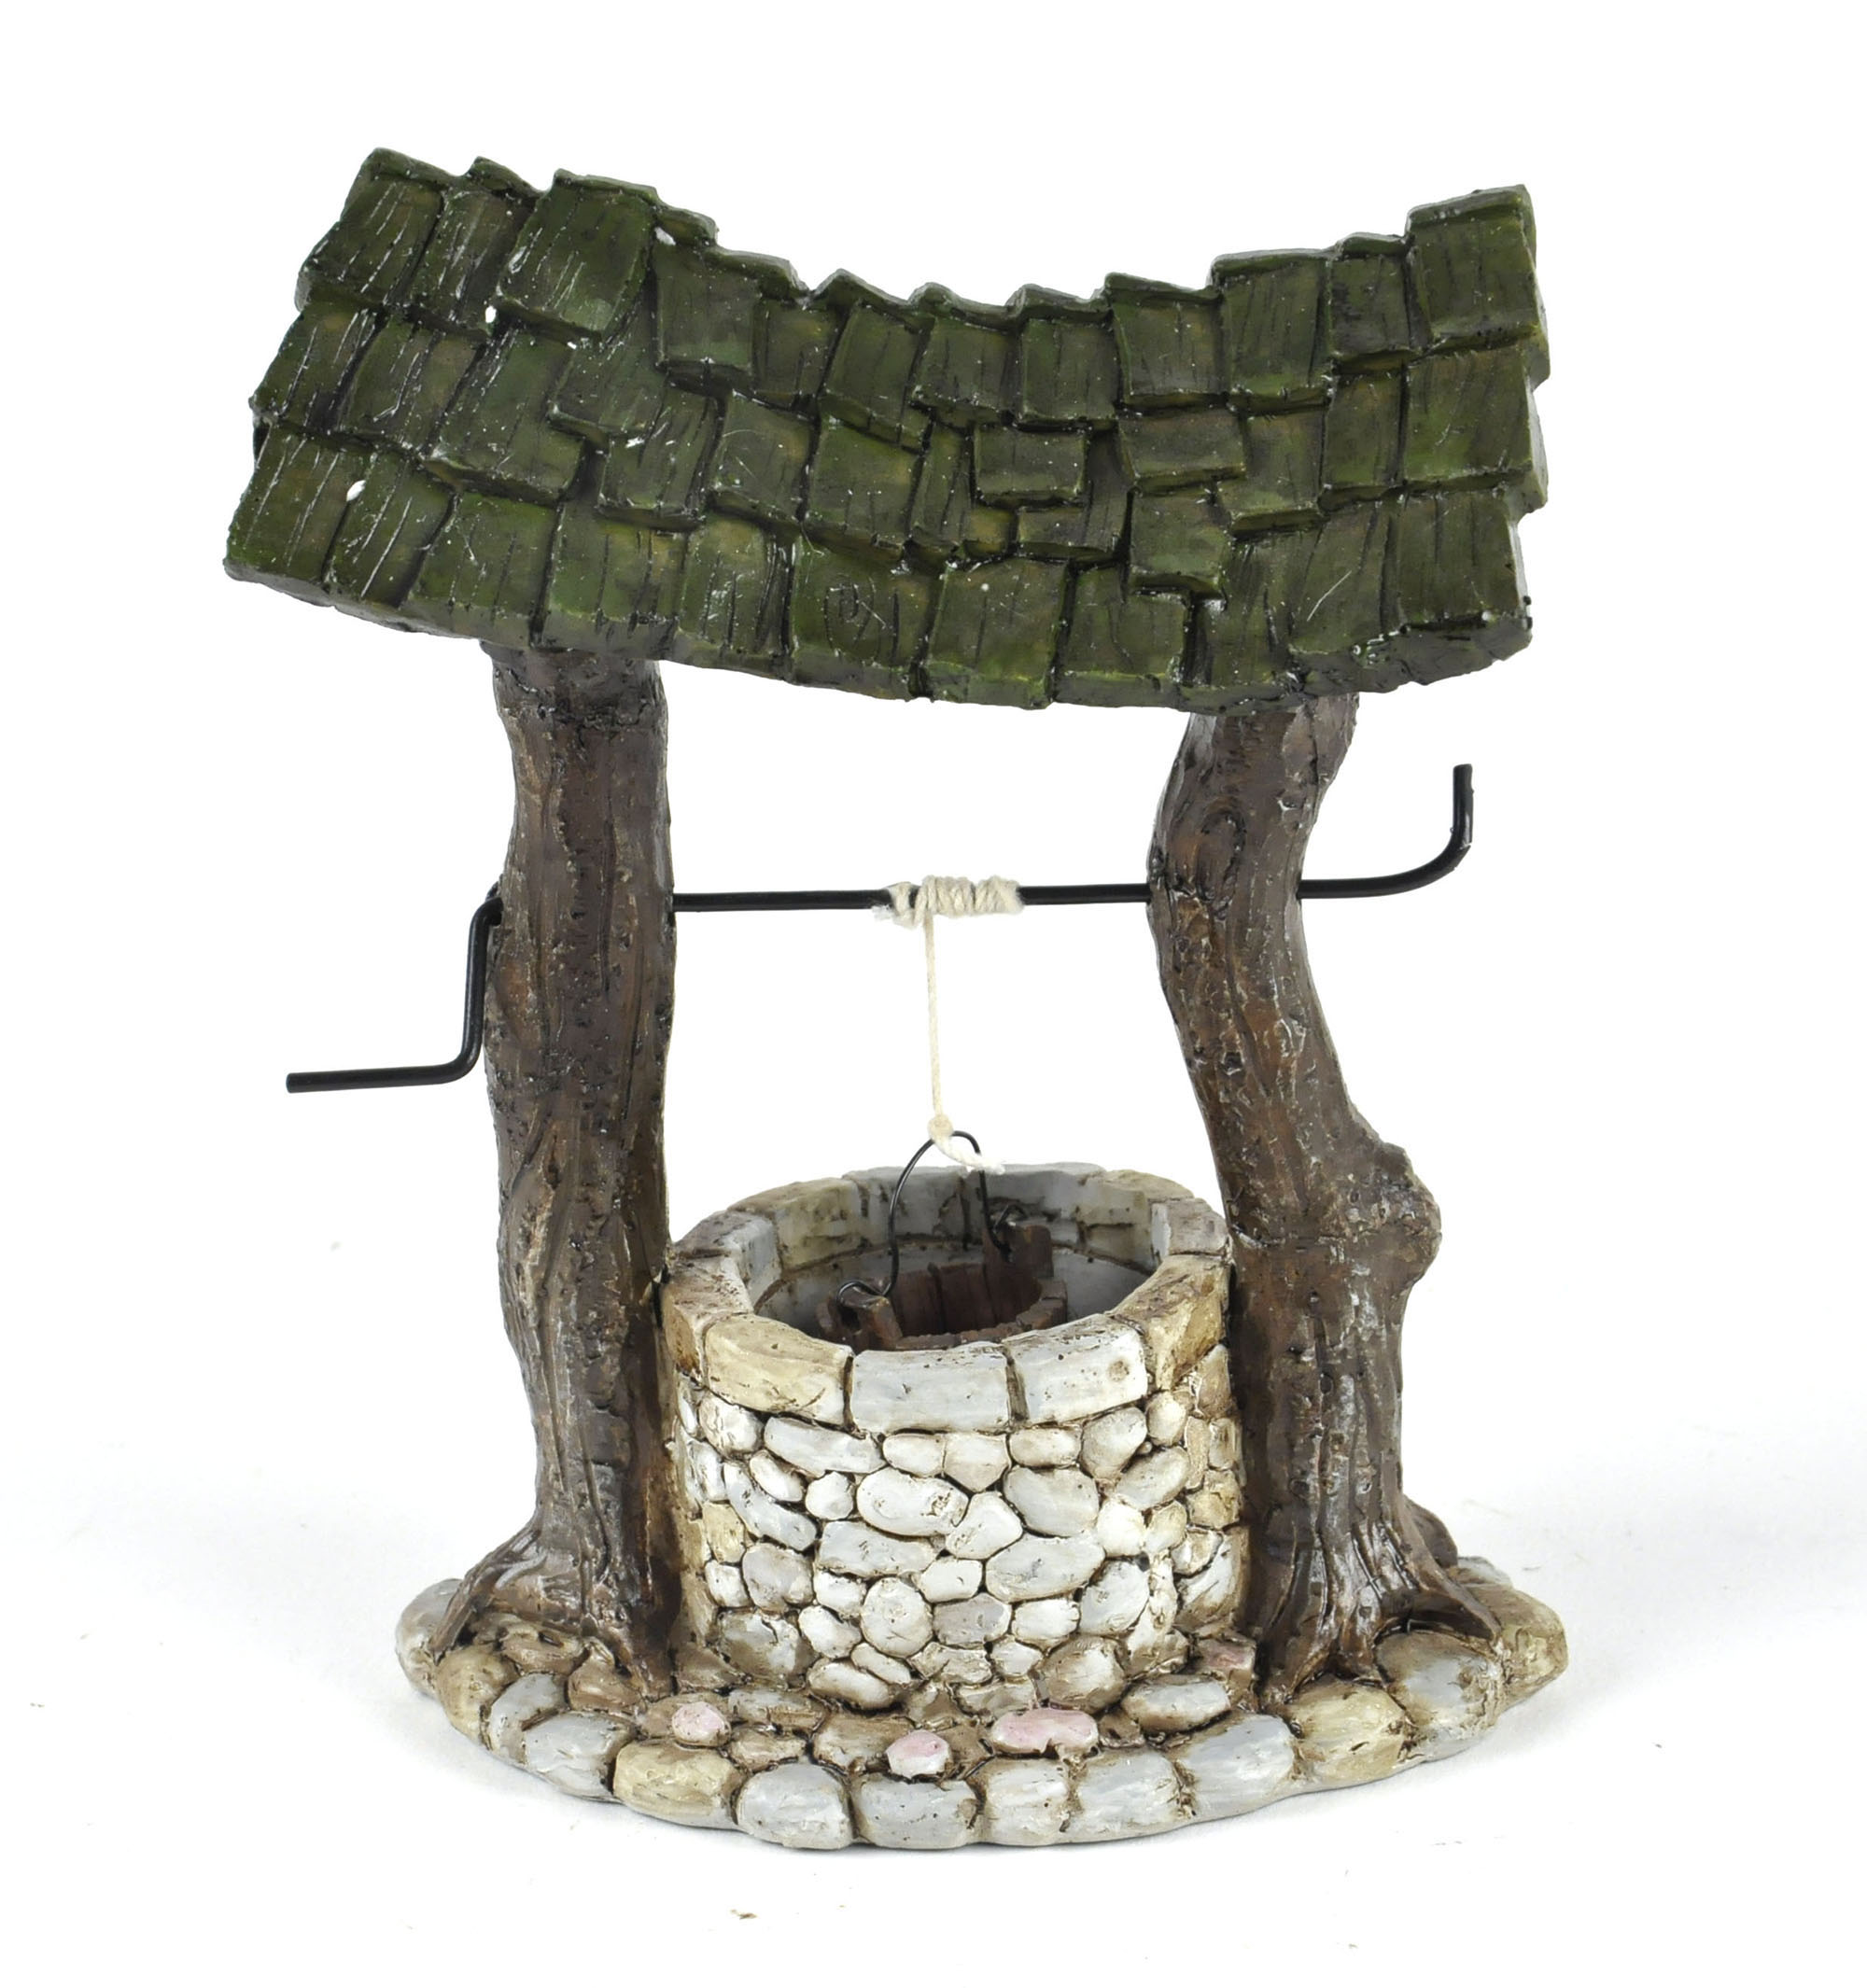 New Cooking Gadgets Fairy Village Wishing Well Fiddlehead Fairy Garden